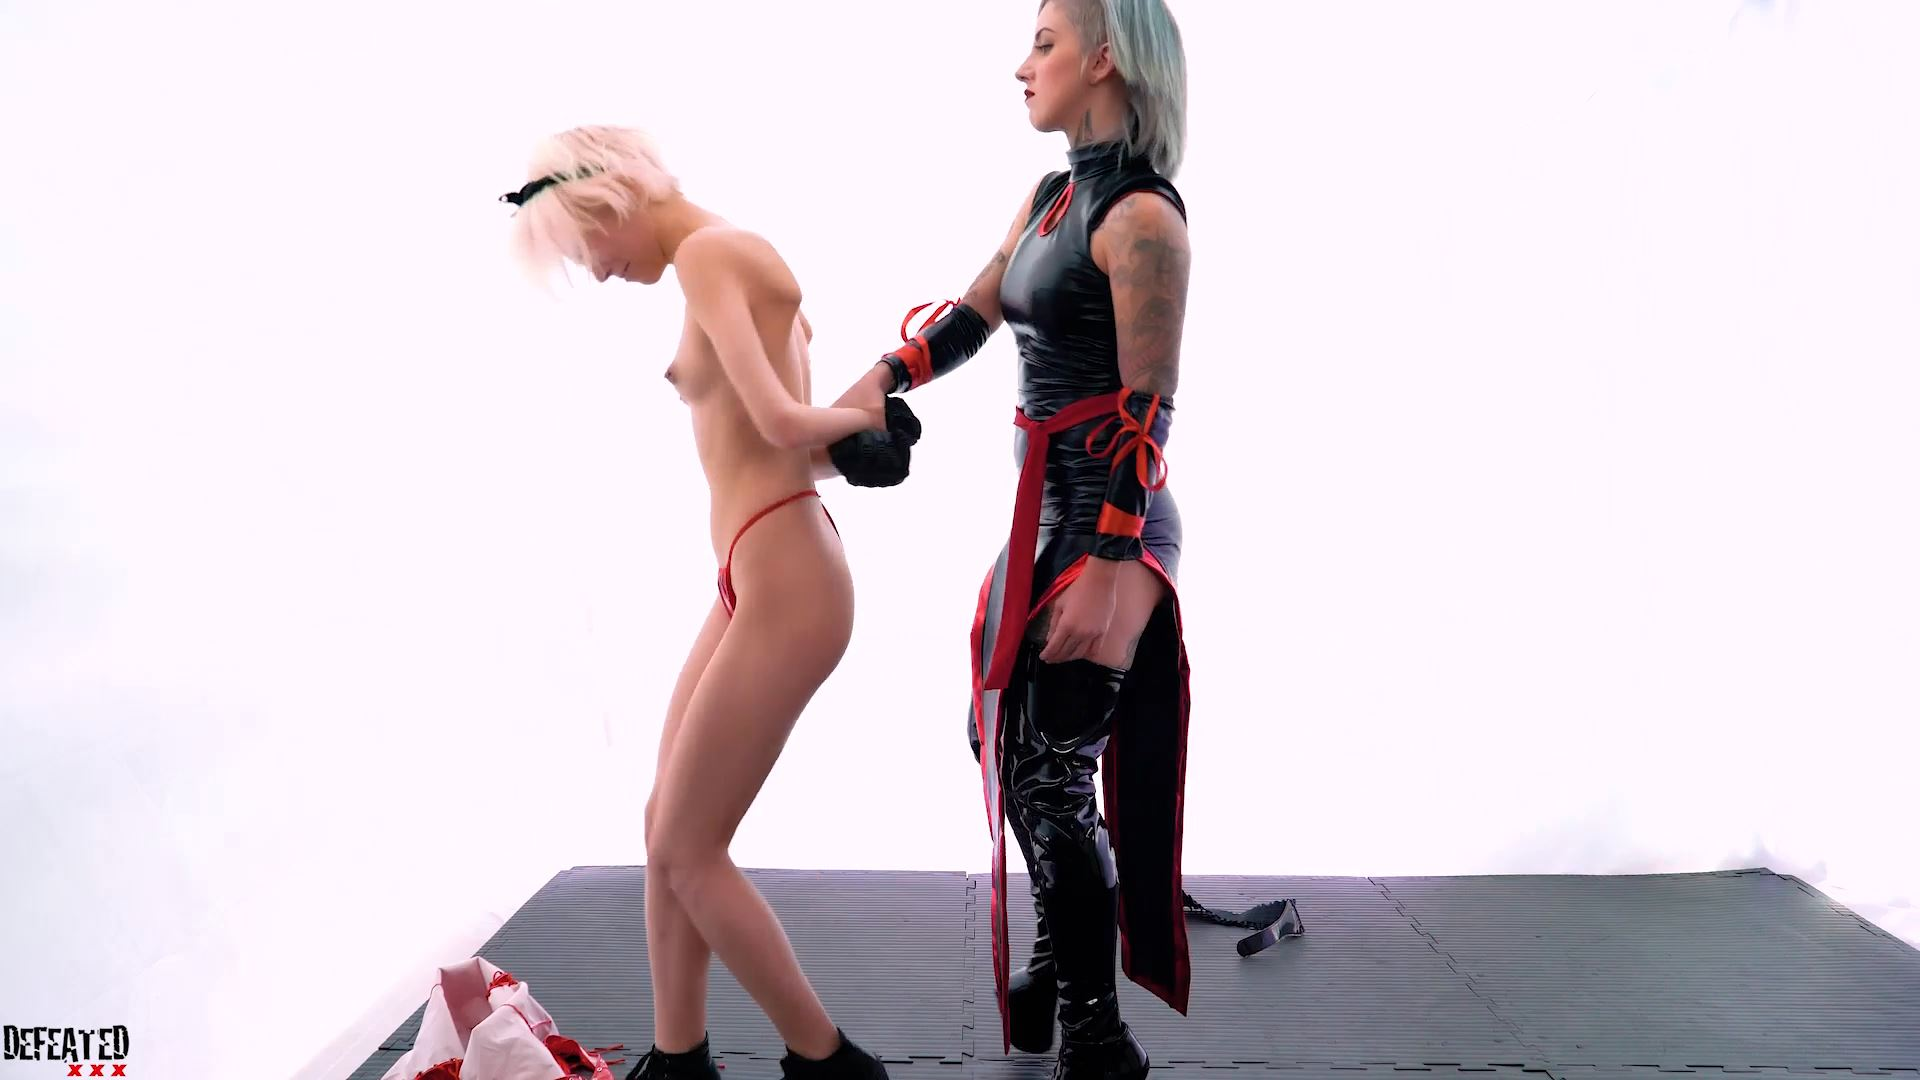 Superior Girl Vs Evil Woman - DEFEATED XXX - FULL HD/1080p/MP4